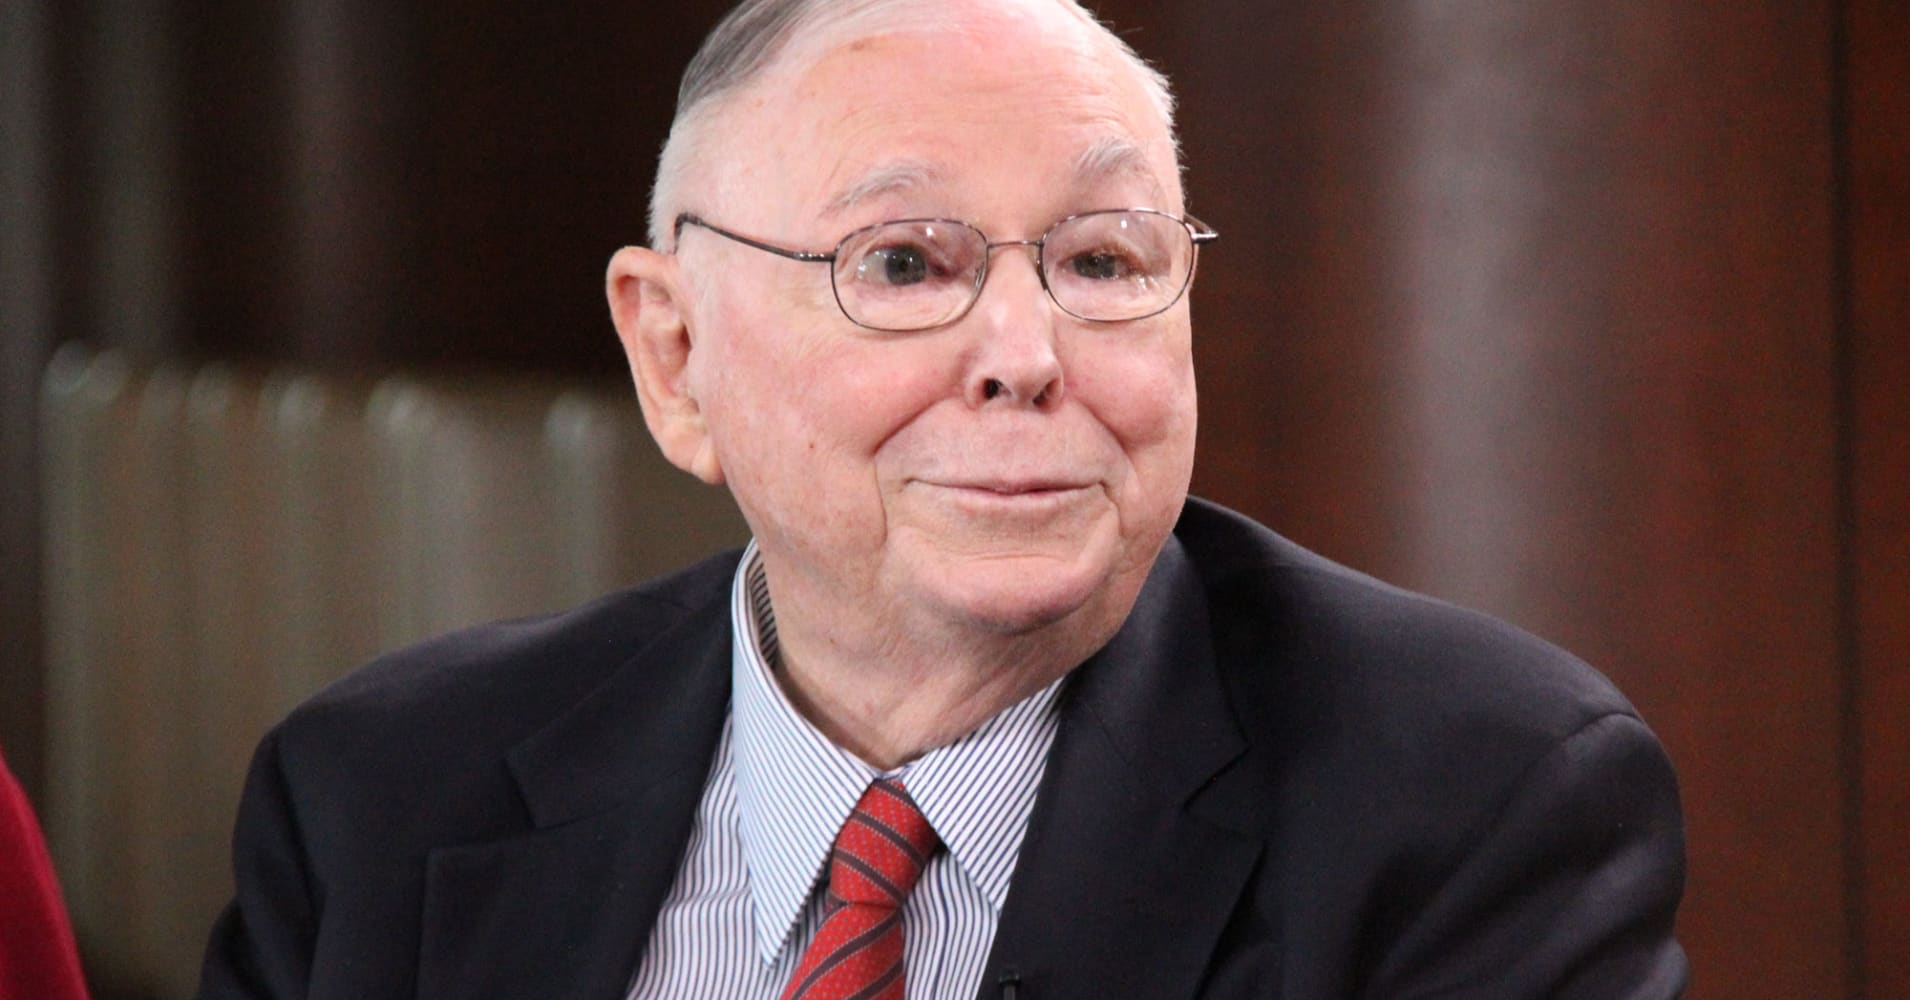 The brilliant life advice Charlie Munger gave at Harvard 24 years ago